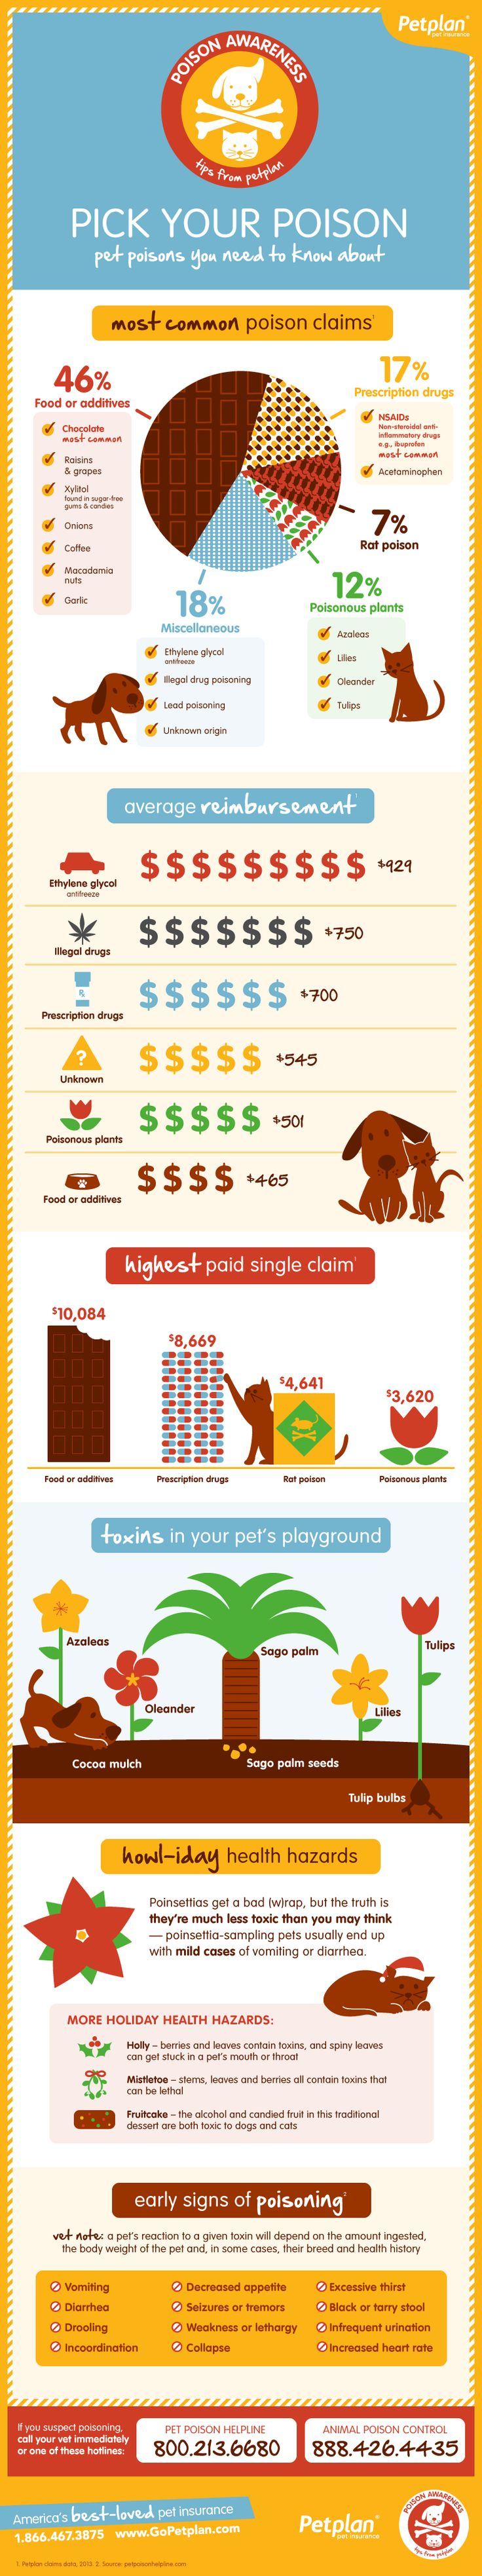 Pet Poison Awareness #Infographic. Share to keep pets safe!